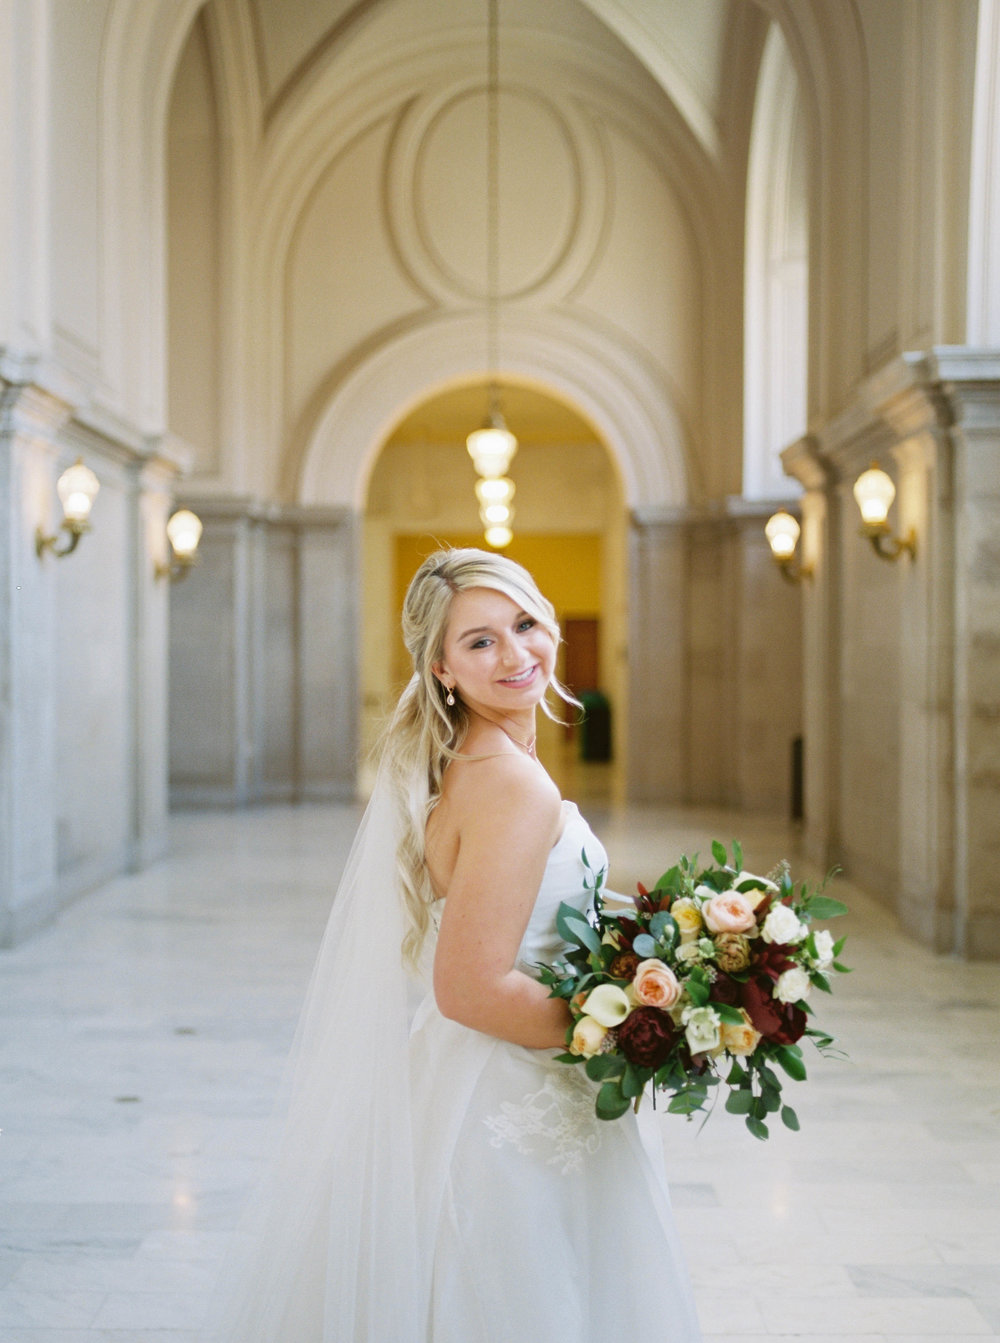 DennisRoyCoronel_Photography_SanFranciscoCityHall_Wedding-16.jpg